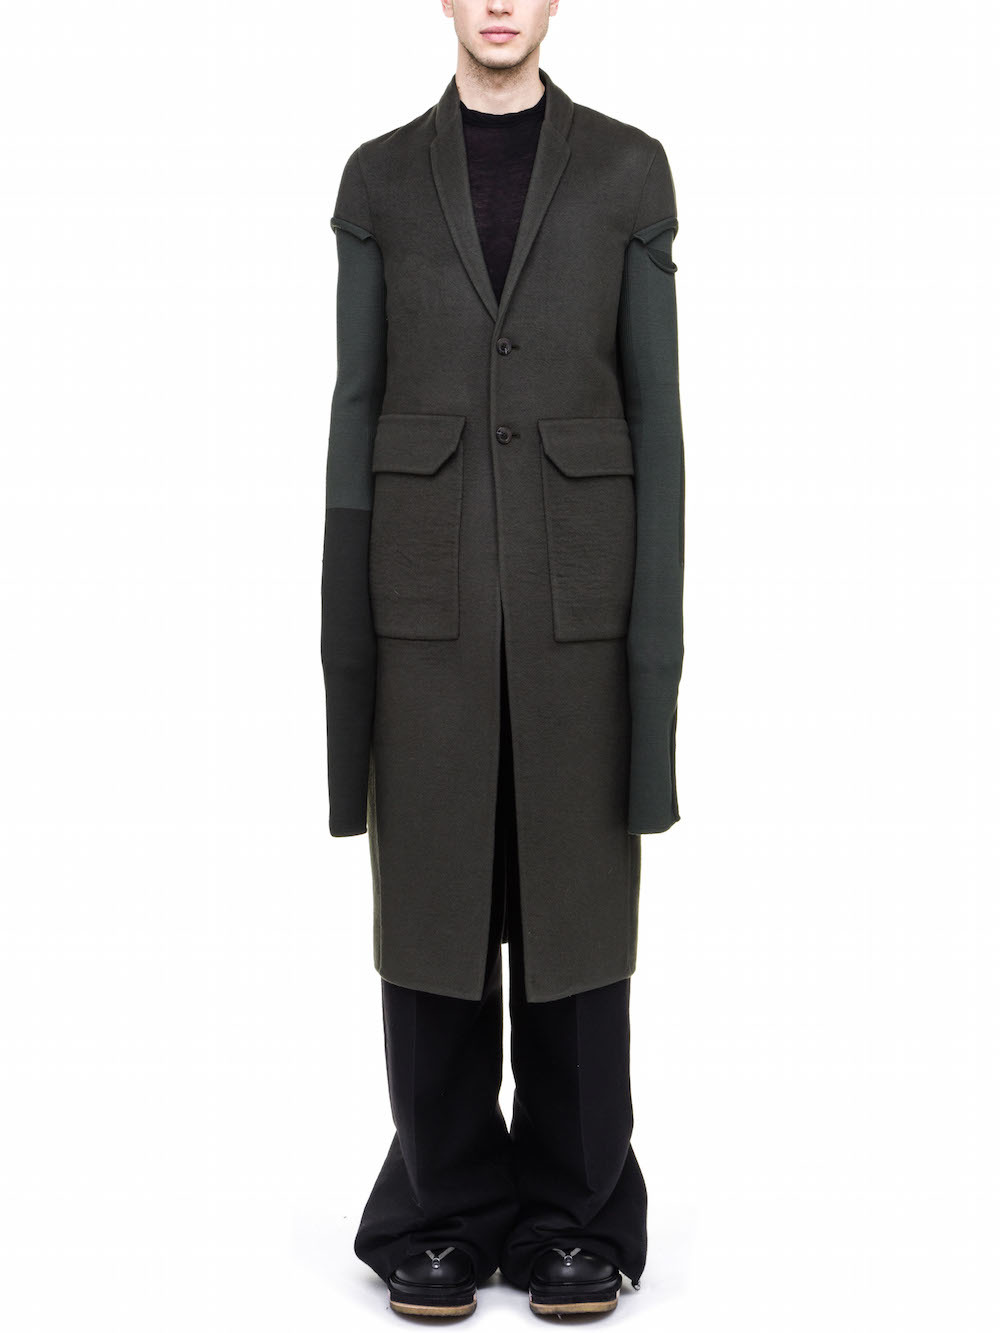 RICK OWENS OFF-THE-RUNWAY COAT IN CASHMERE